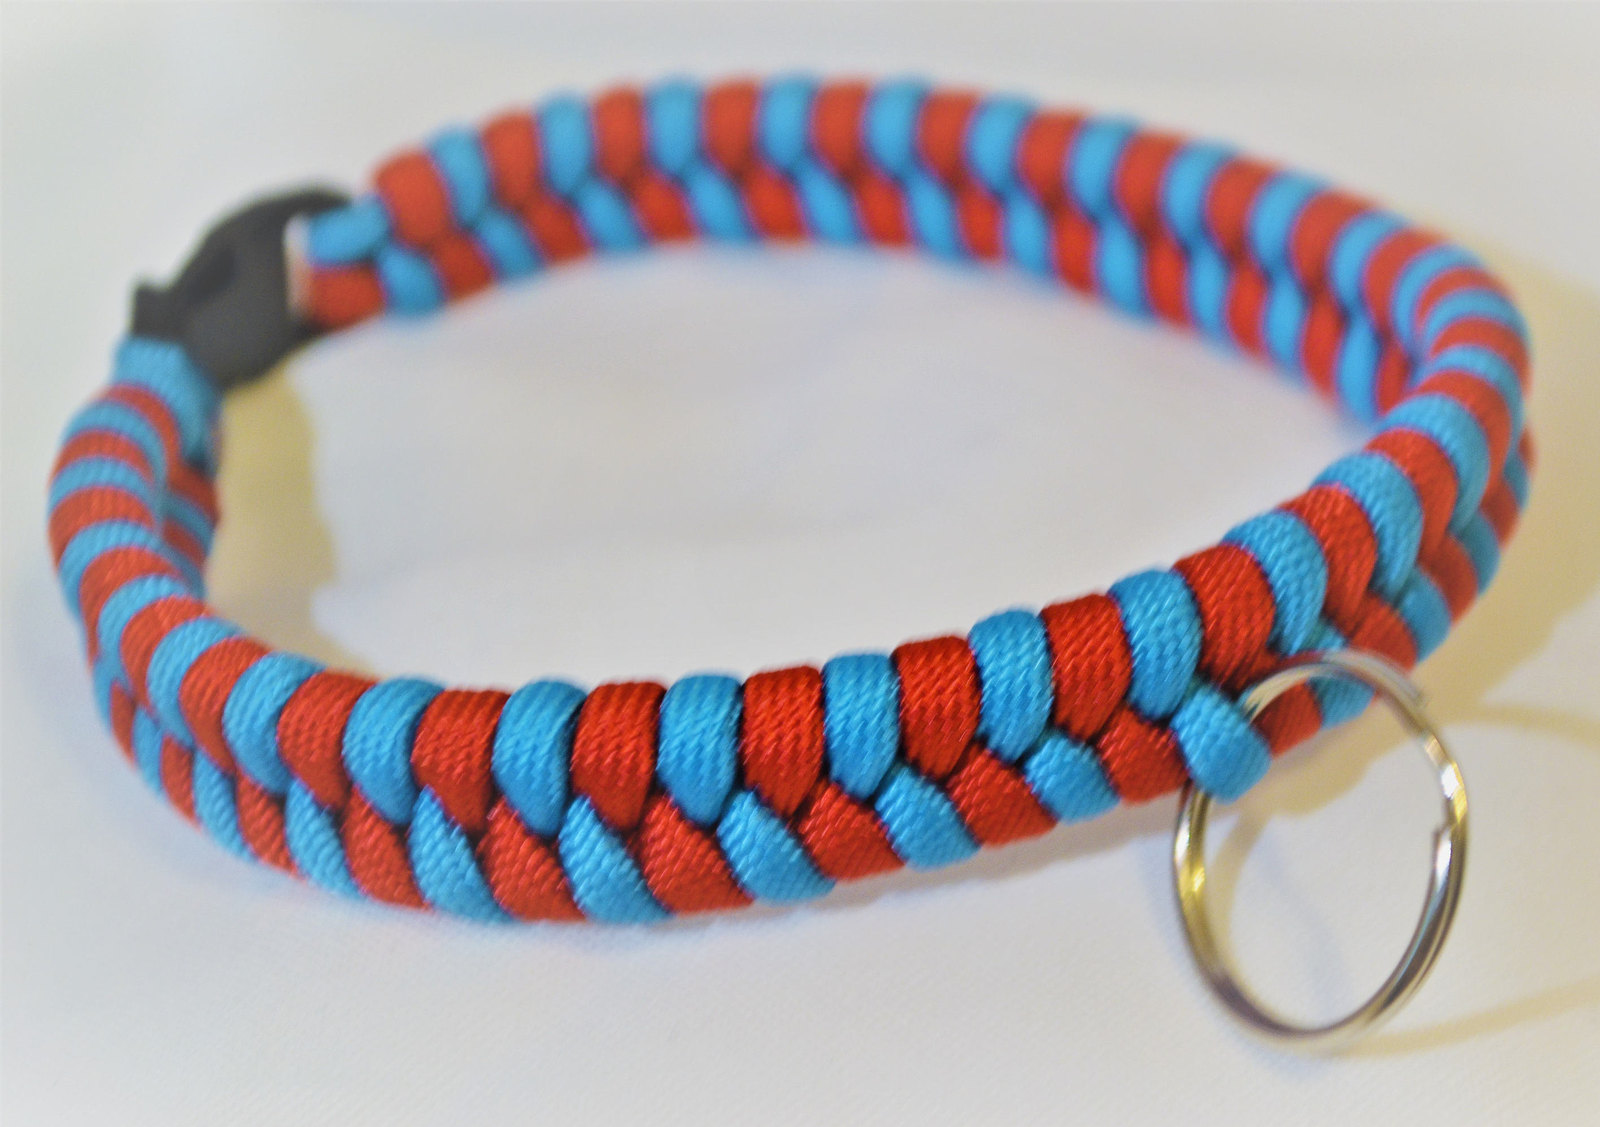 Primary image for Paracord 550 Dog Collar Red and Blue Fish Tail Design Black Quick Release Buckle